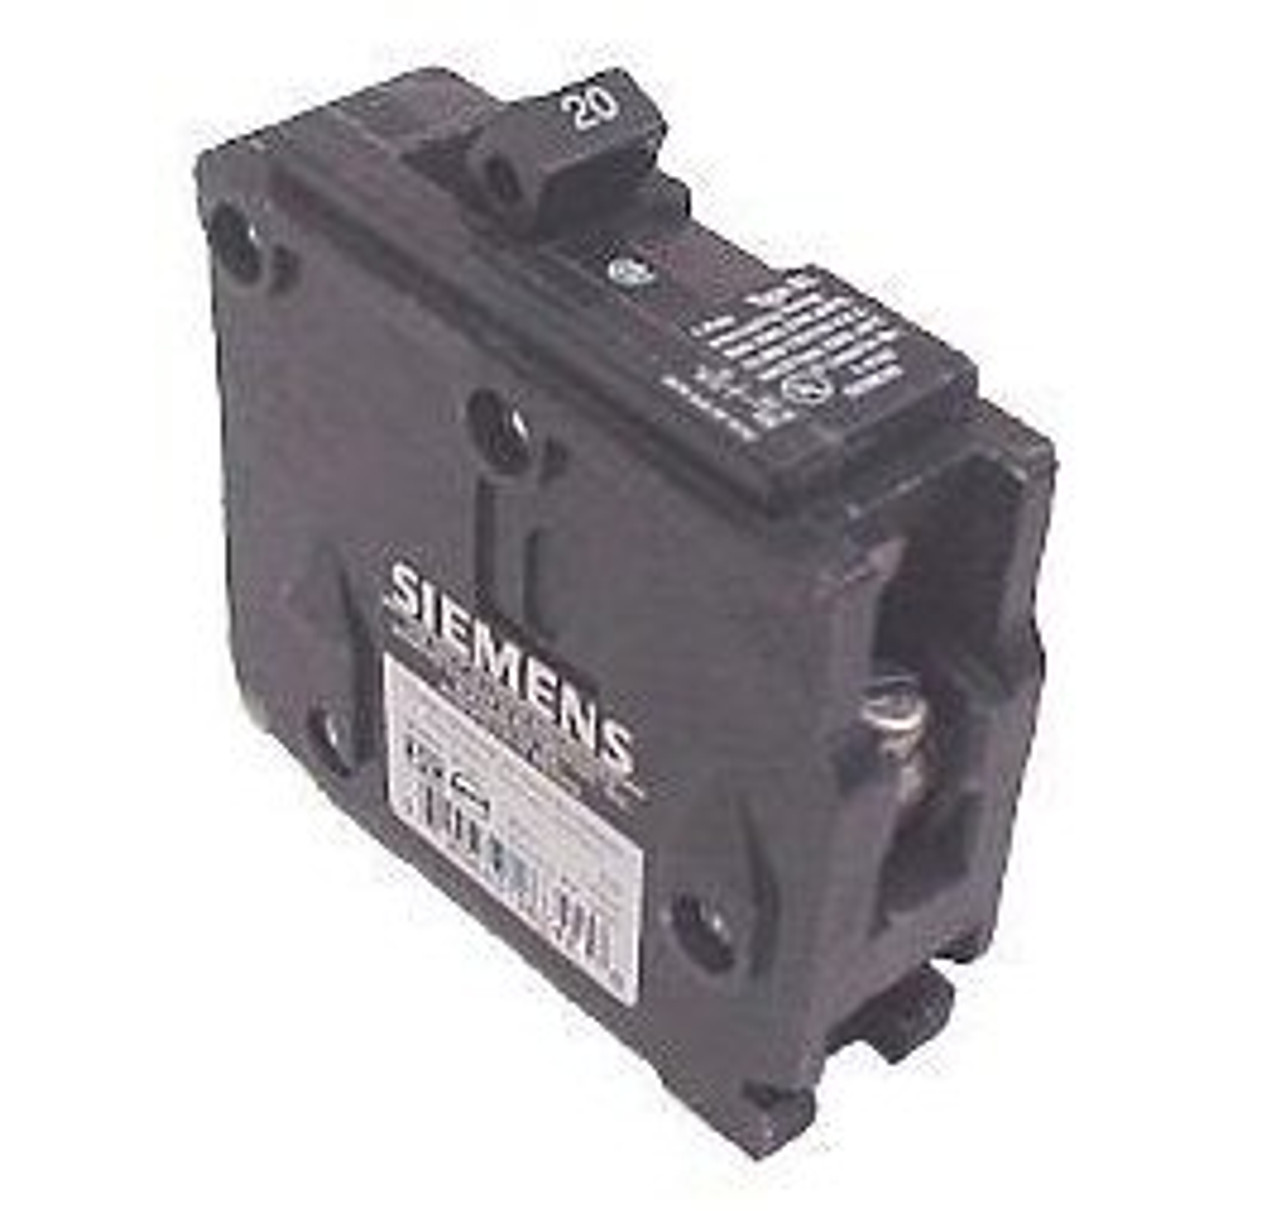 Siemens B115 1 Pole 15Amp 120VAC Type BL Circuit Breaker - New Pull Out